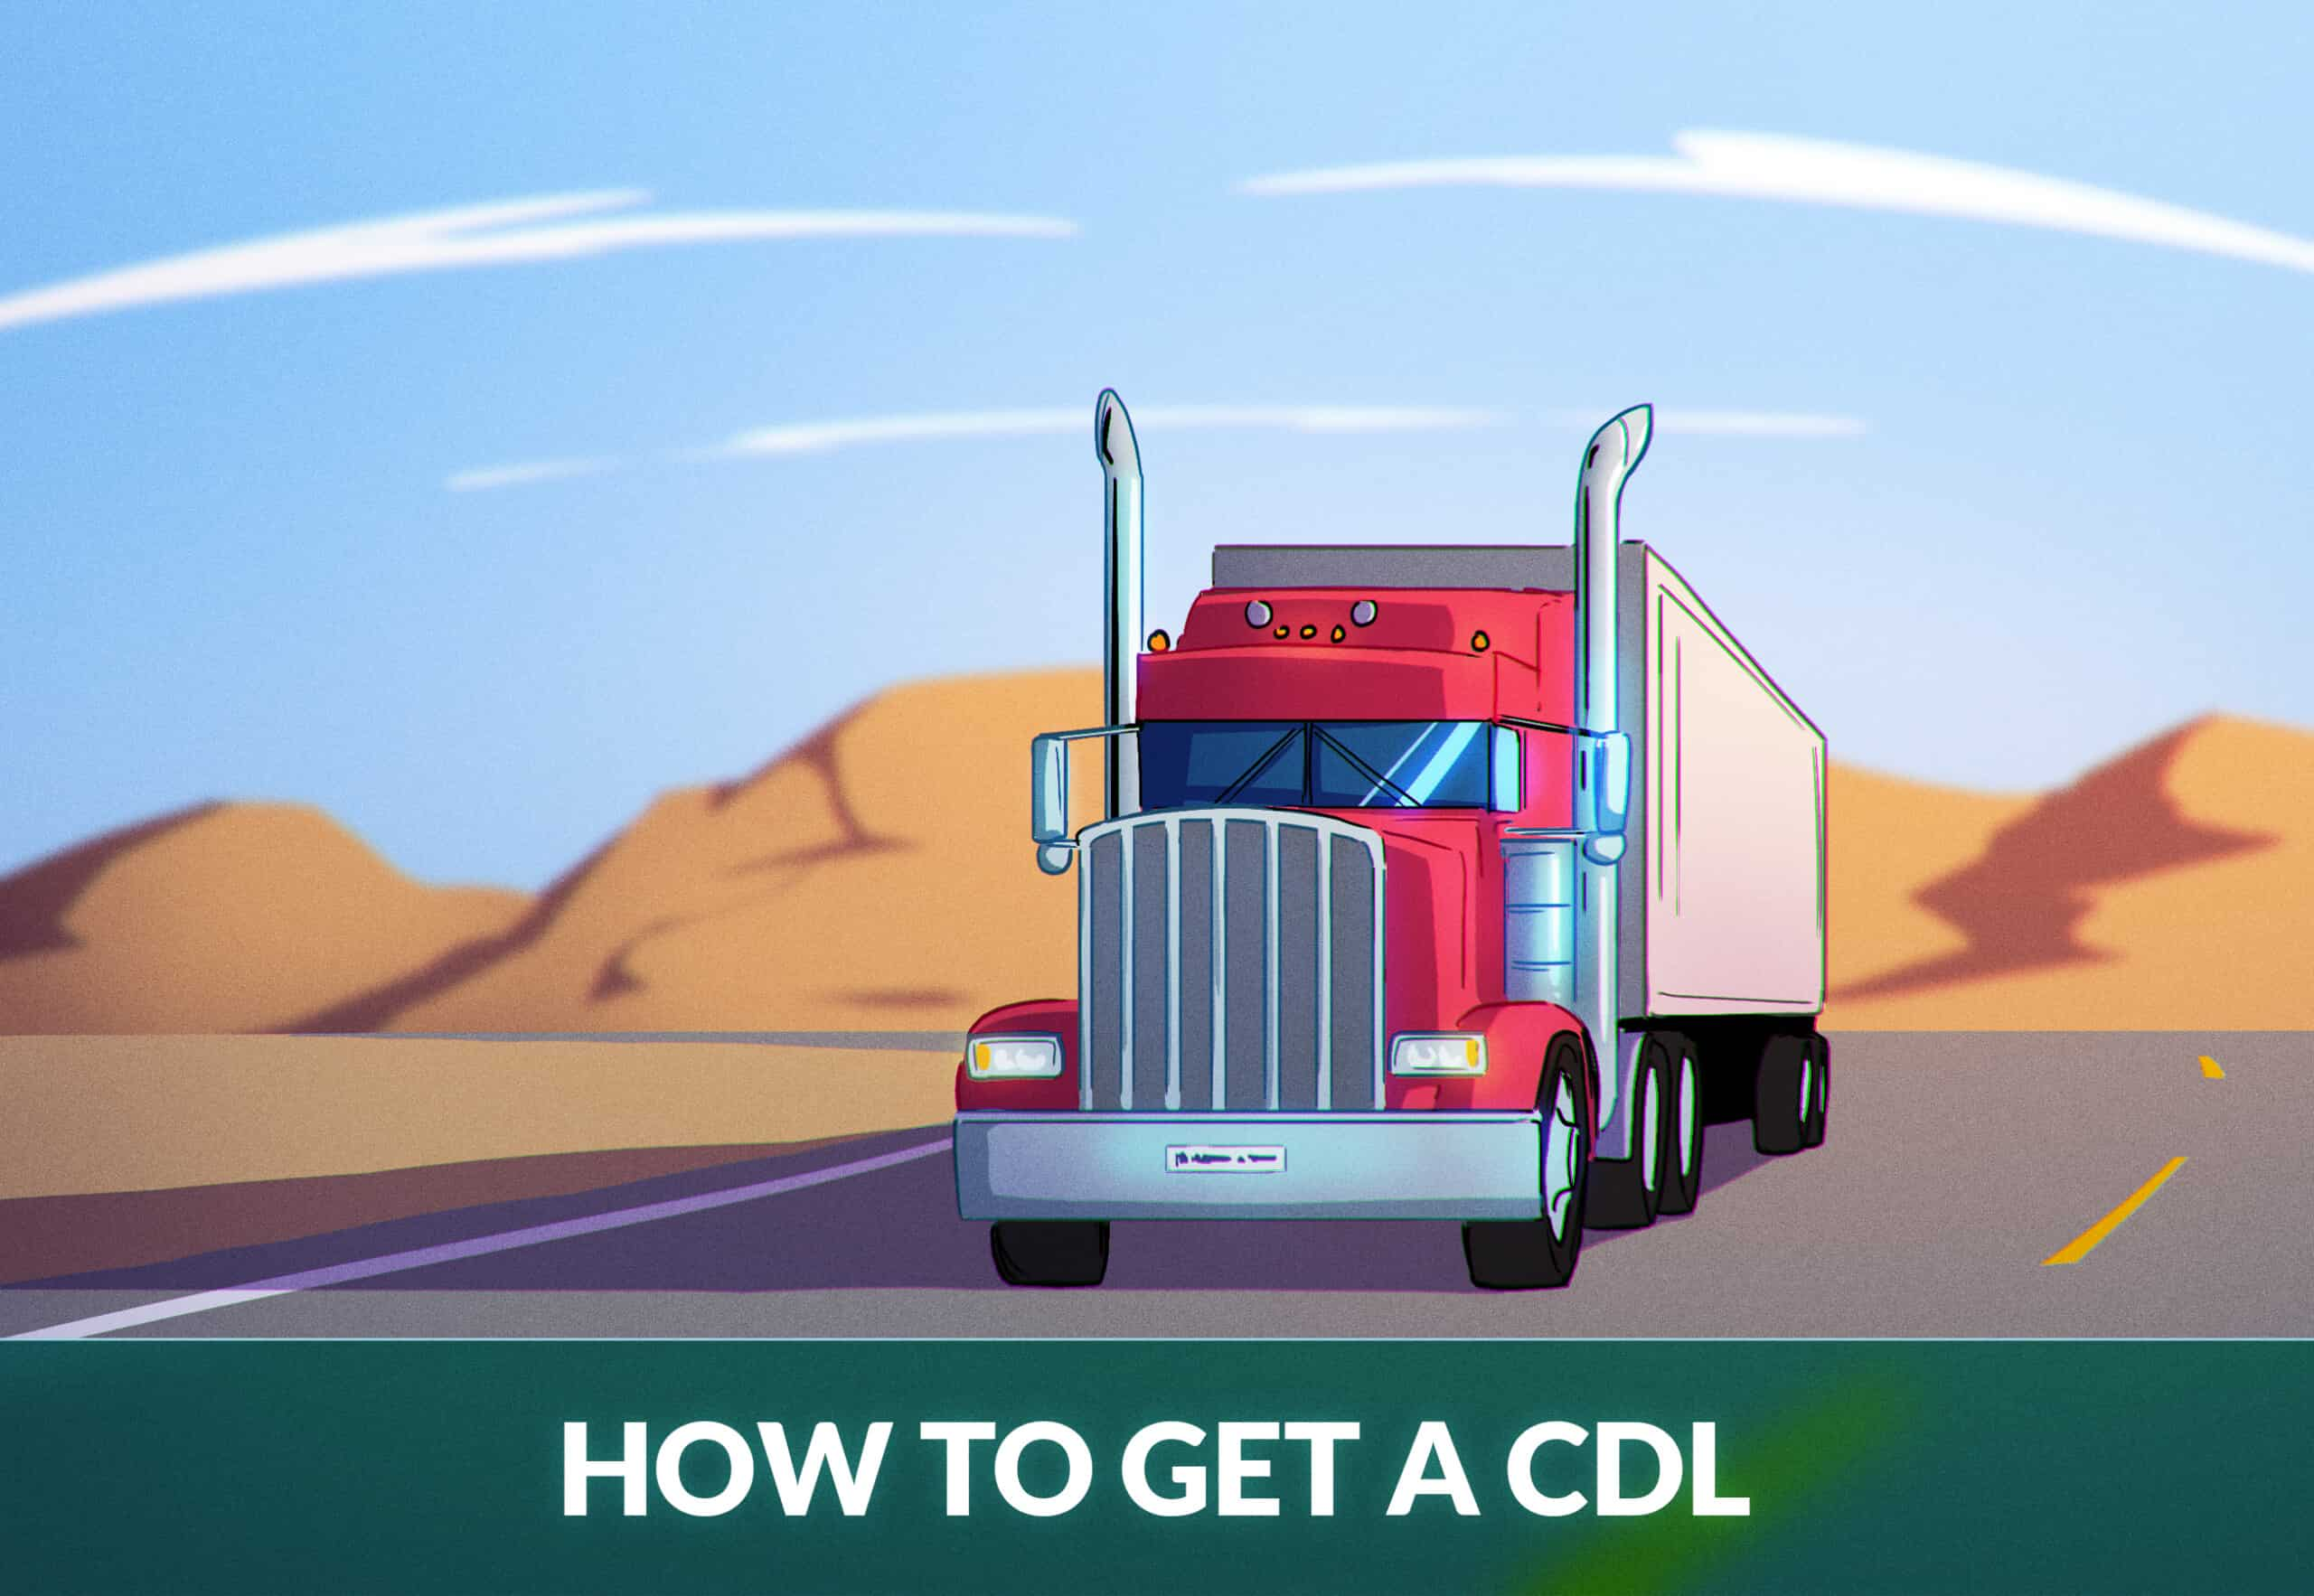 HOW TO GET A CDL